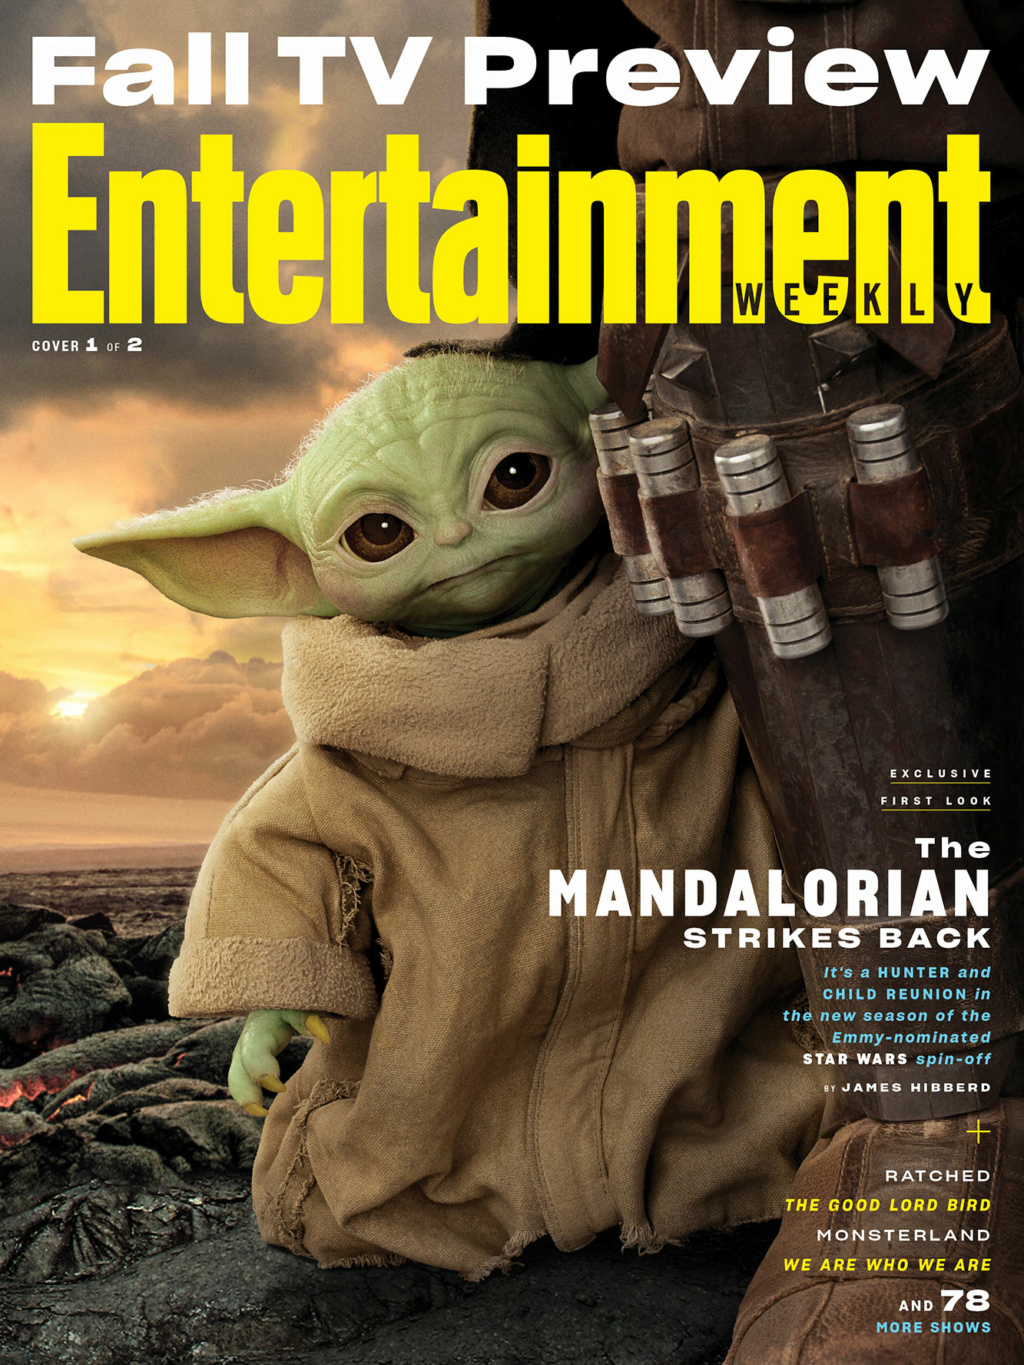 Les NEWS de la saison 2 de Star Wars The Mandalorian  - Page 2 Ew00a10